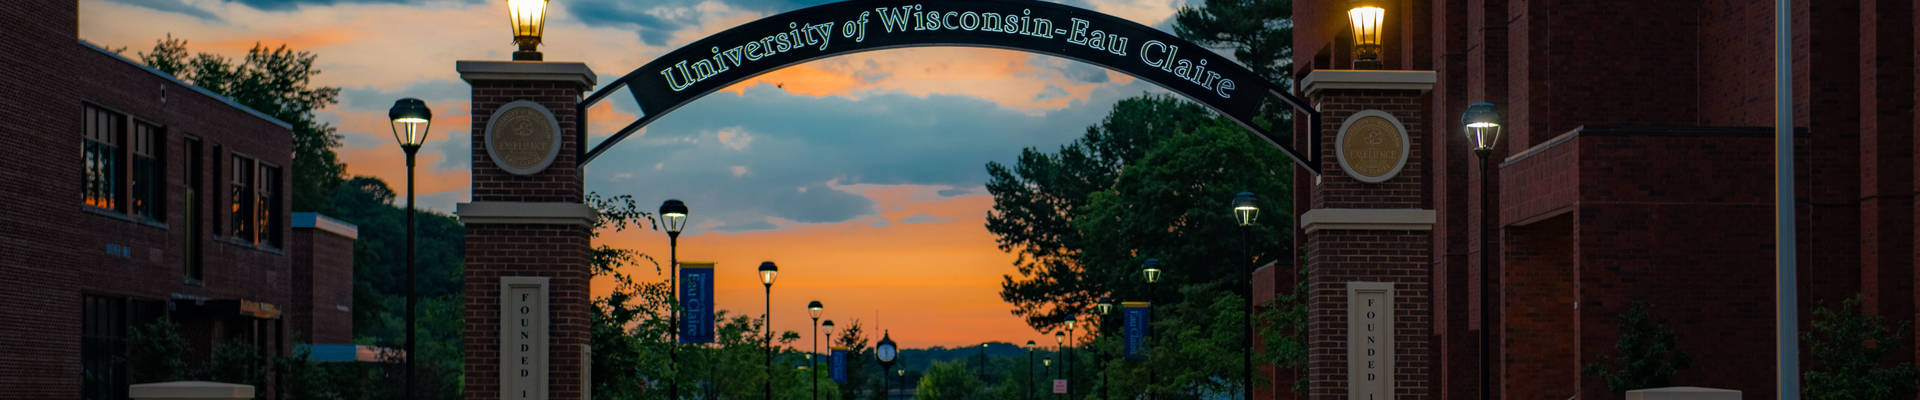 An evening picture of the UW-Eau Claire entrance gate with arch.